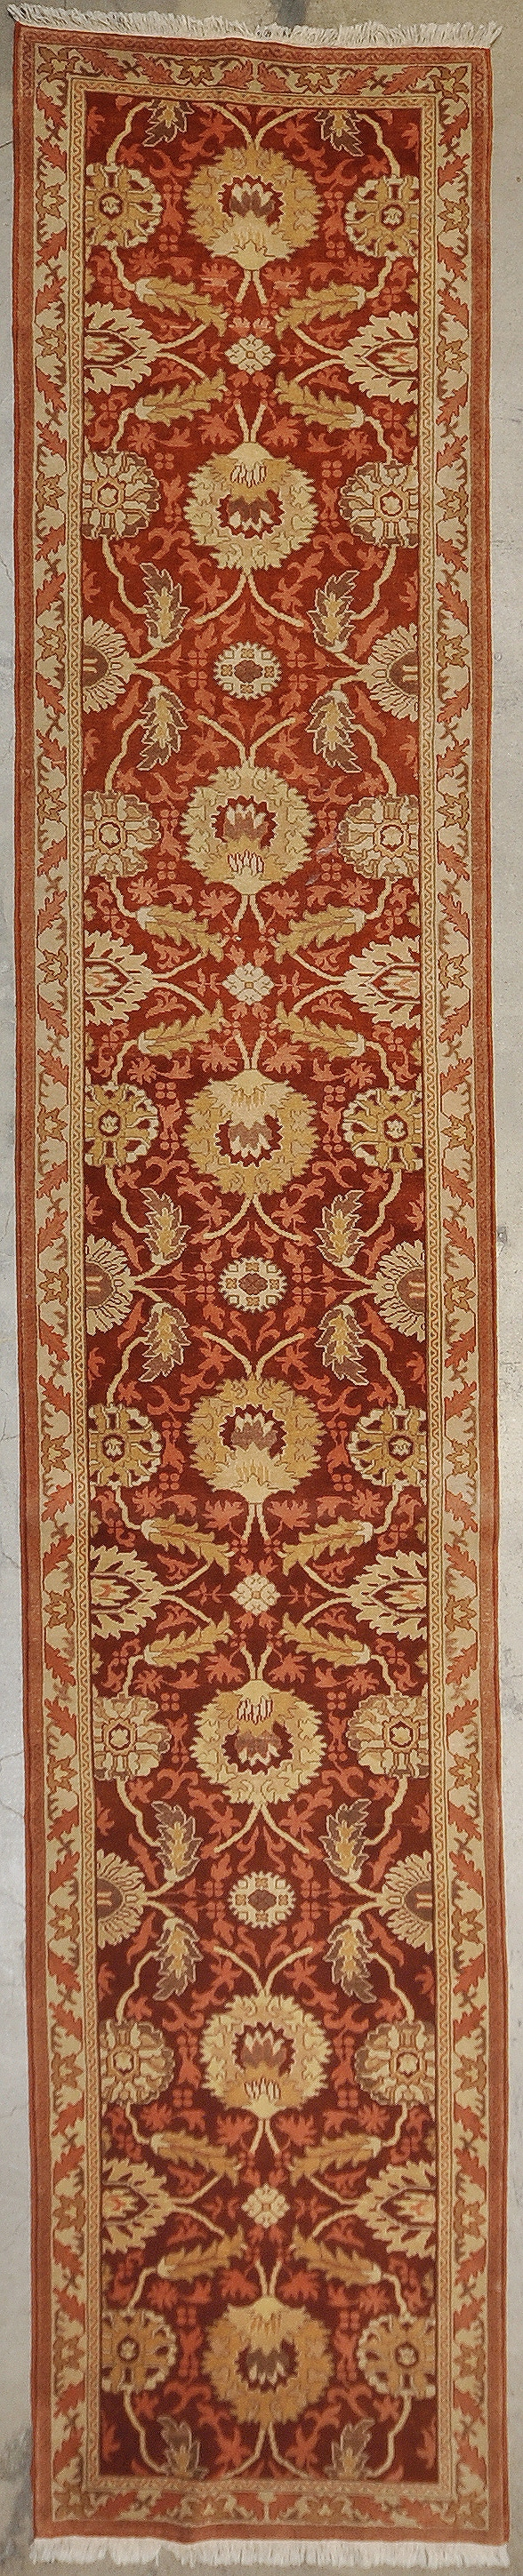 Ziegler & co Sultanabad rugs and more oriental carpet 33611-